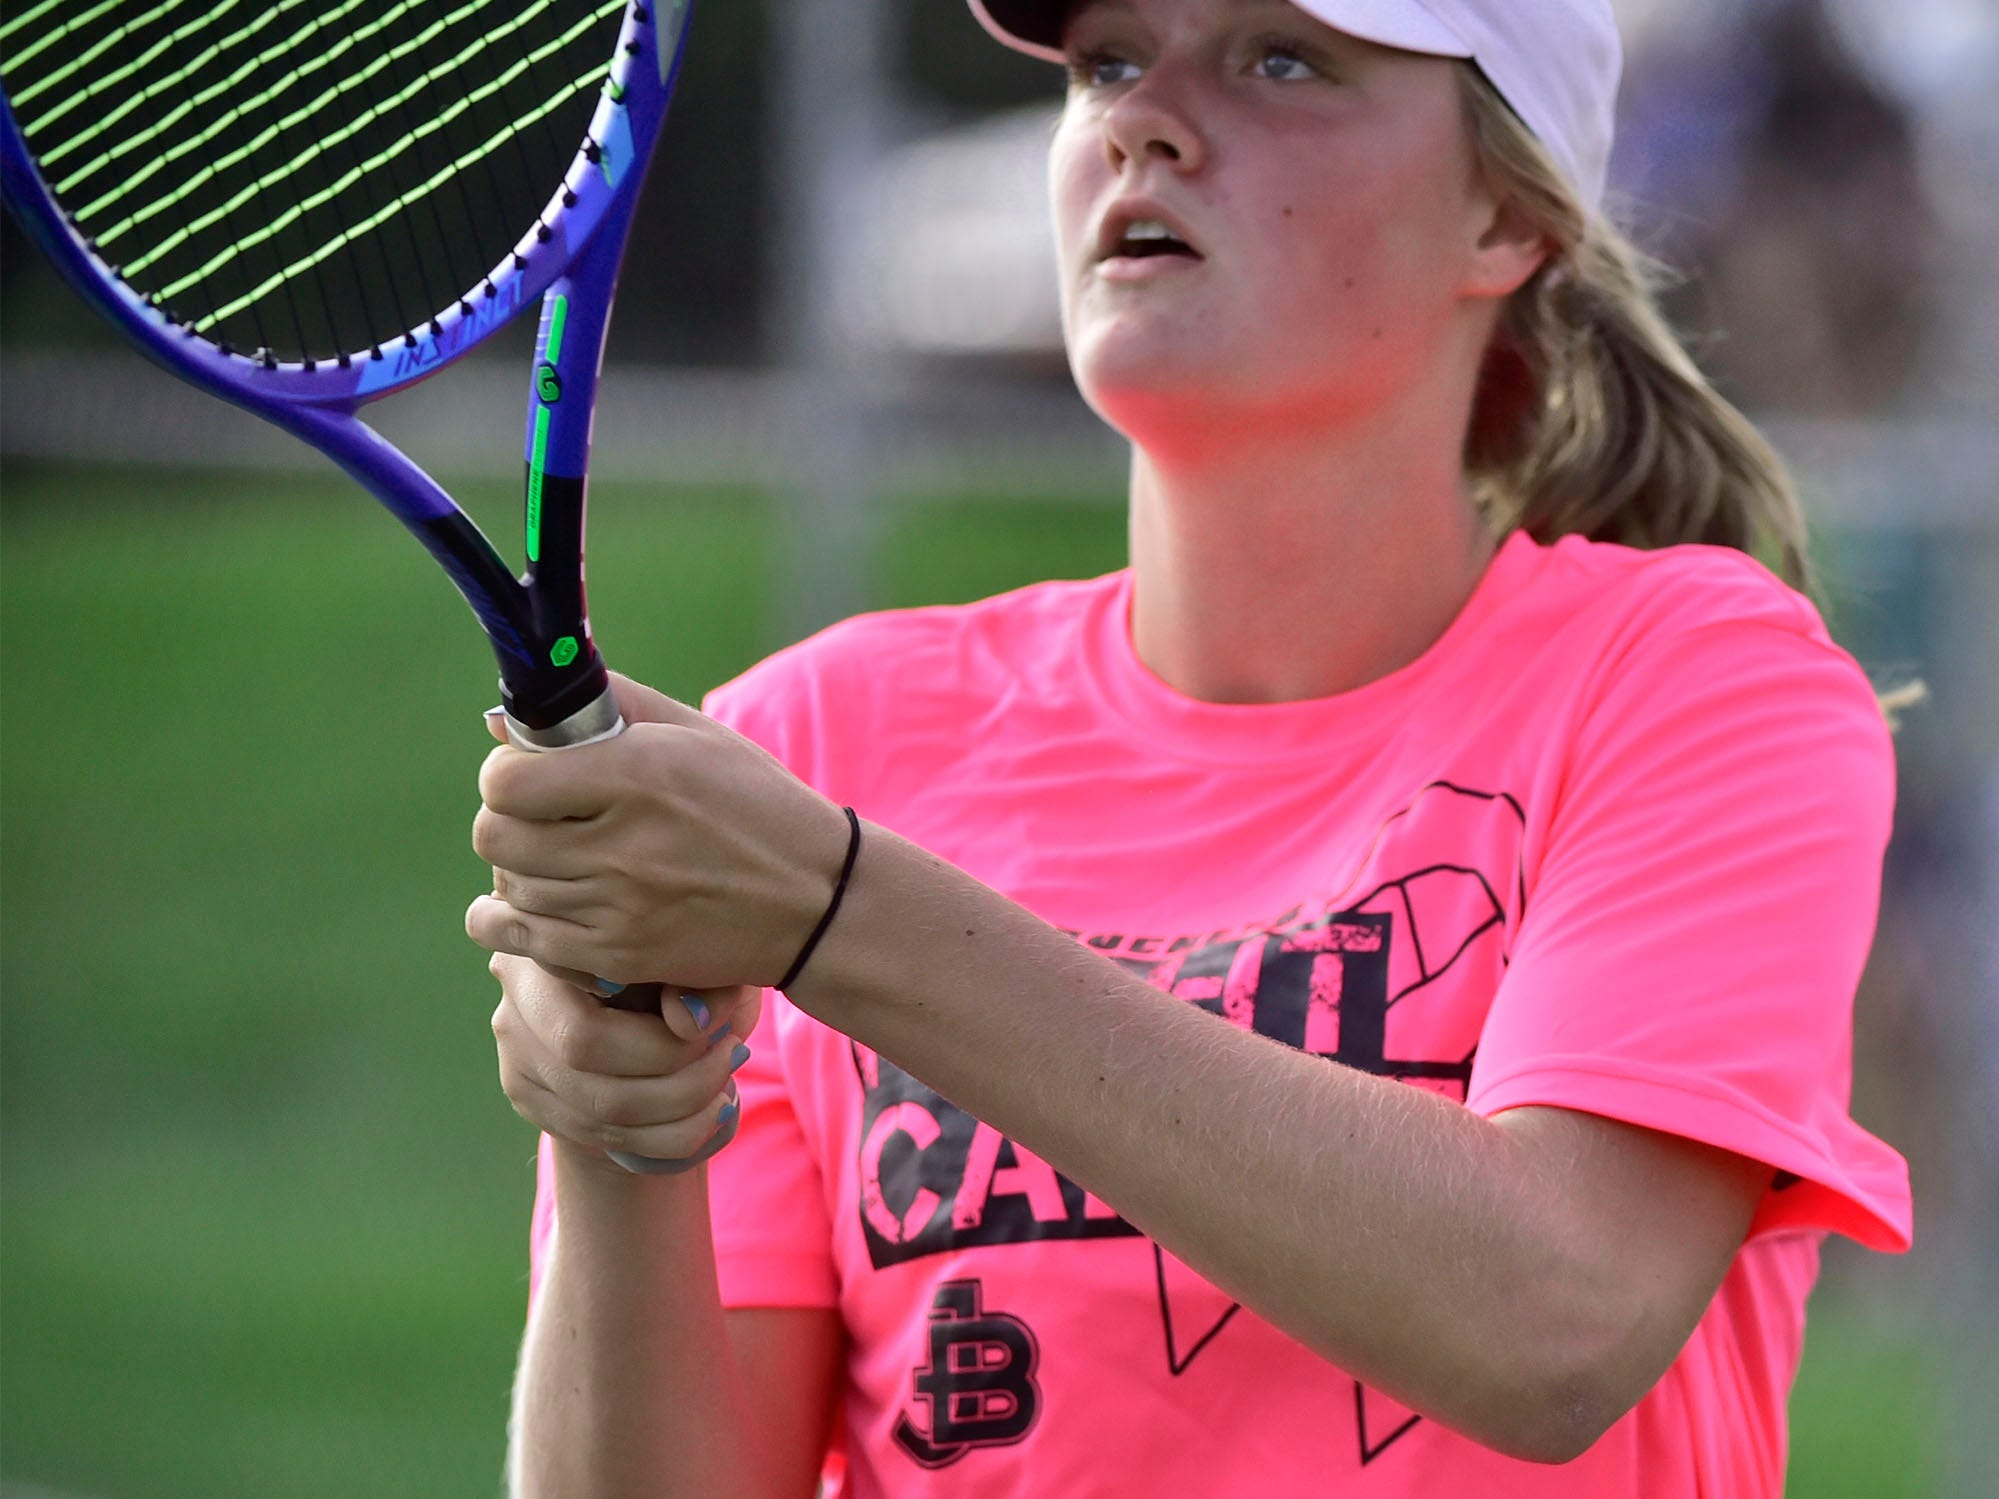 PHOTOS: James Buchanan girls tennis defeats Middletown 5-0